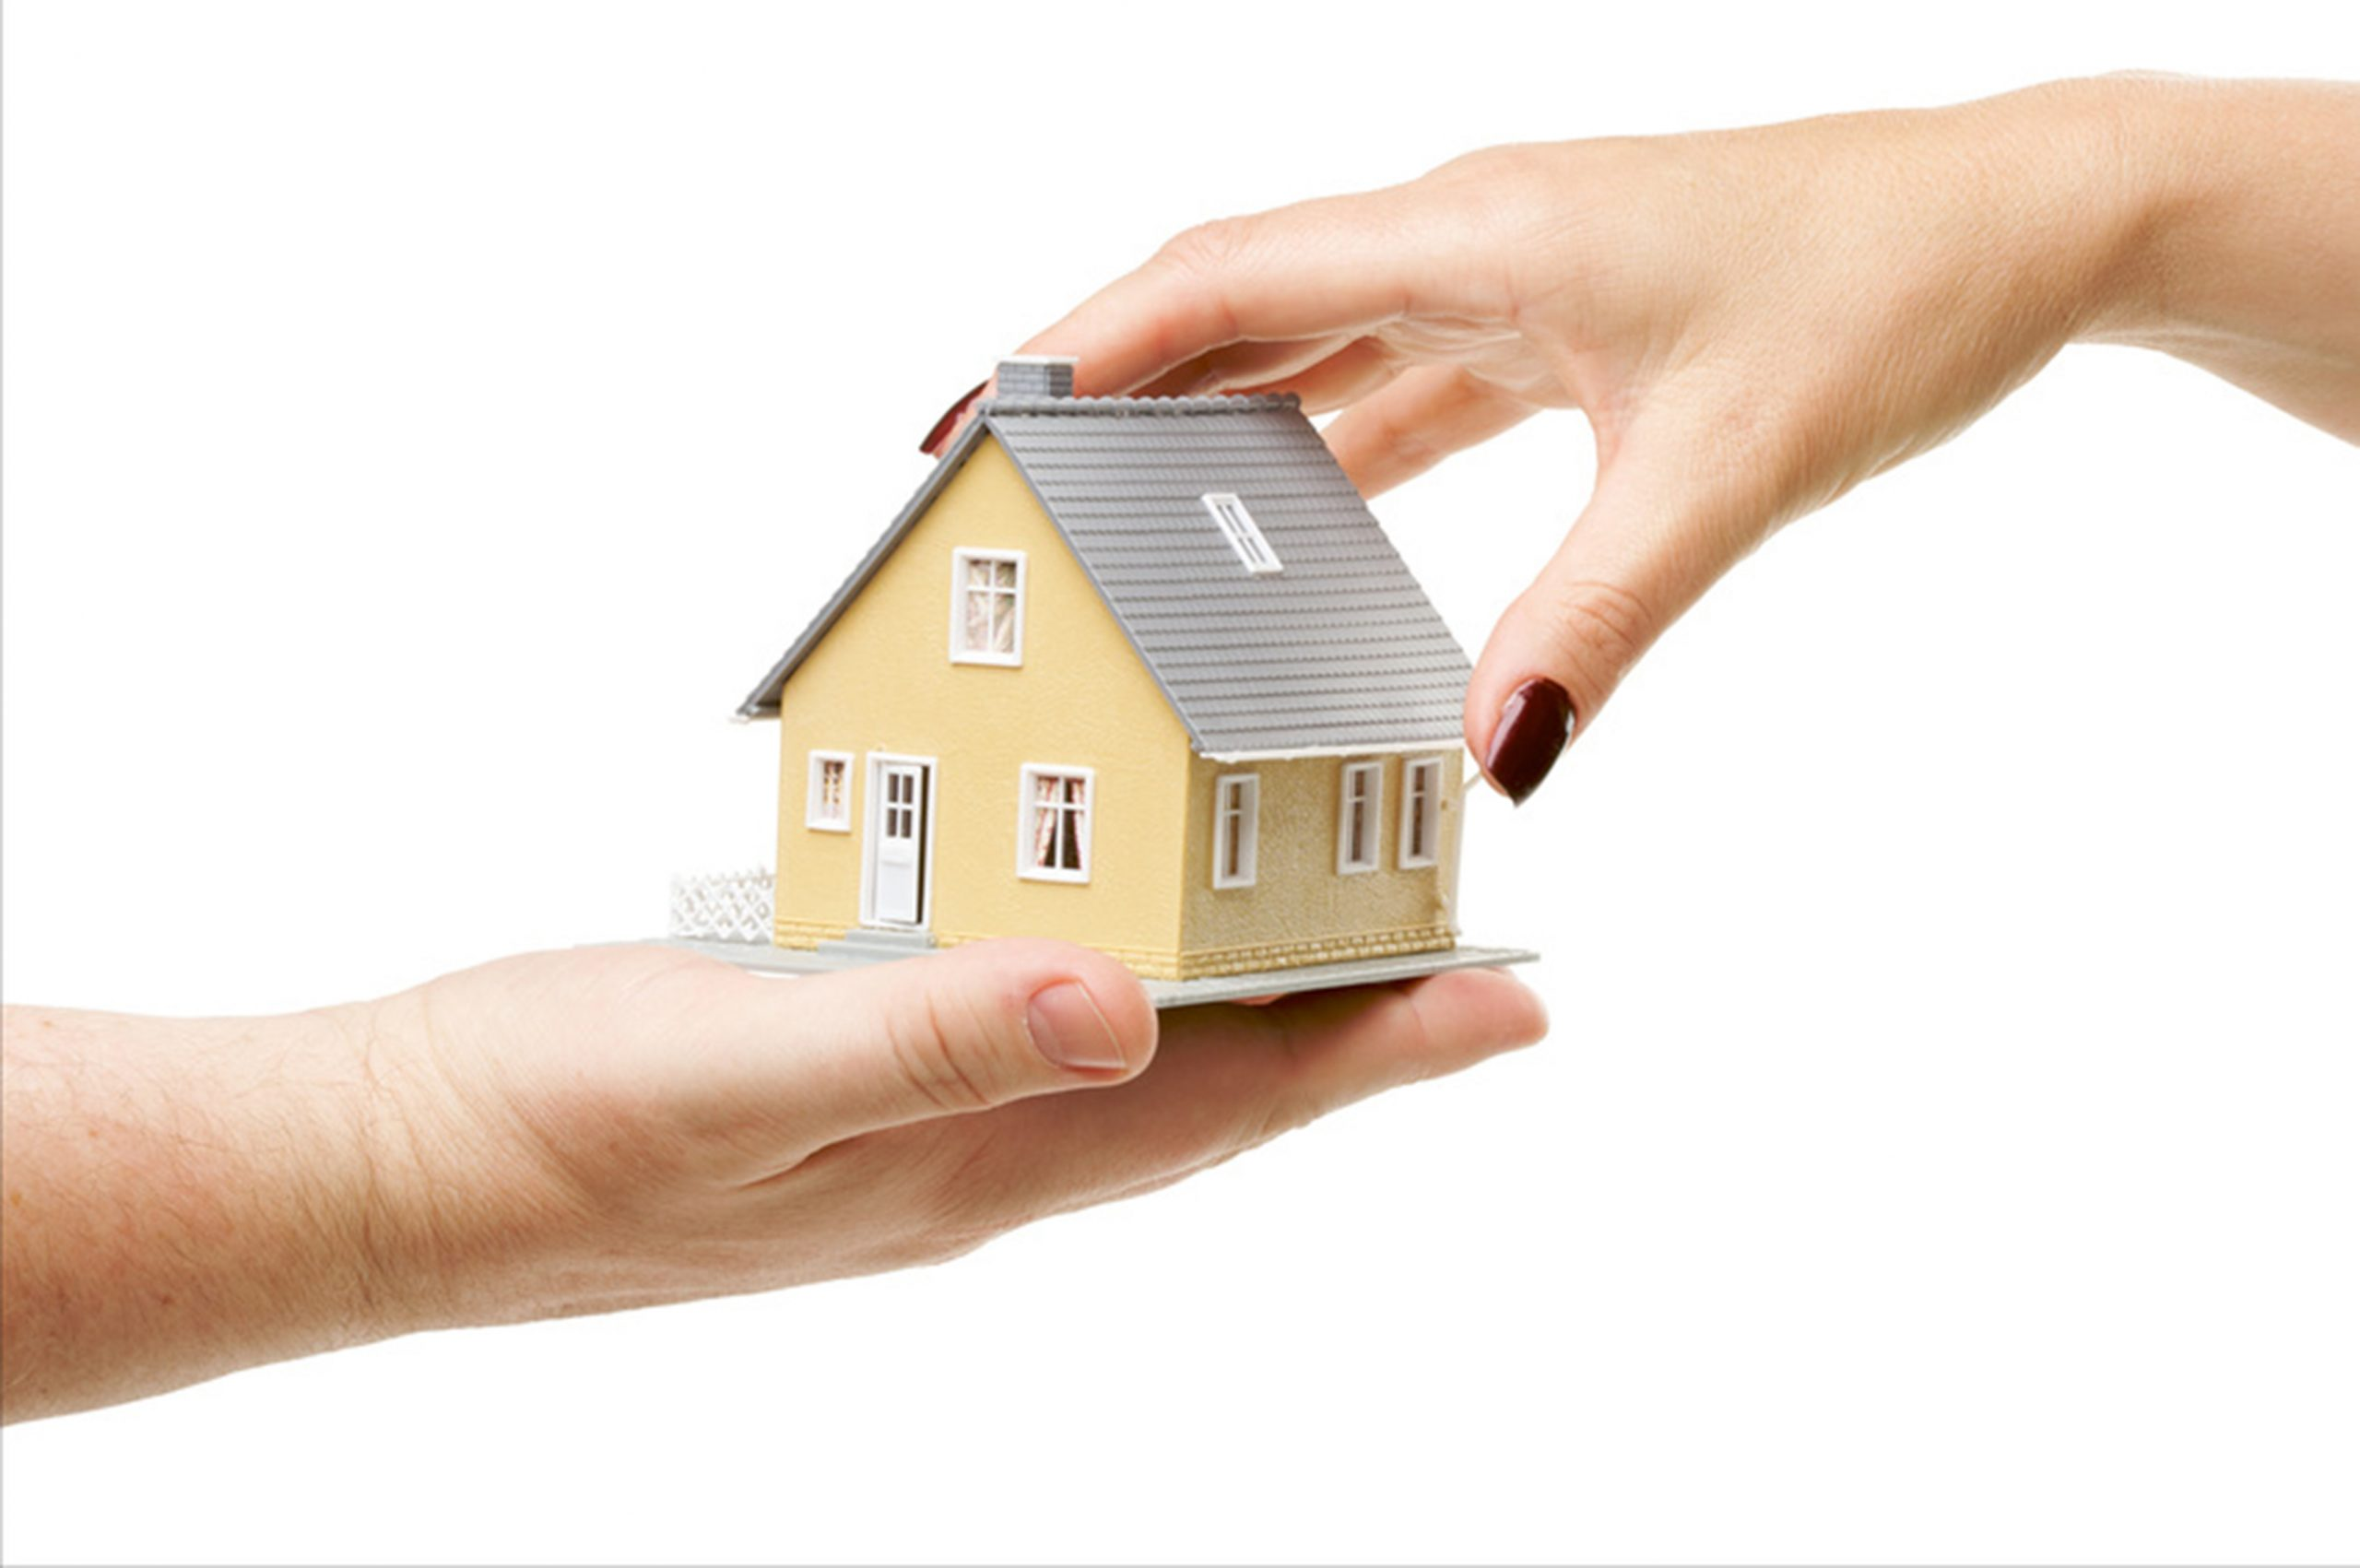 Real Estate Dealings Made Easy